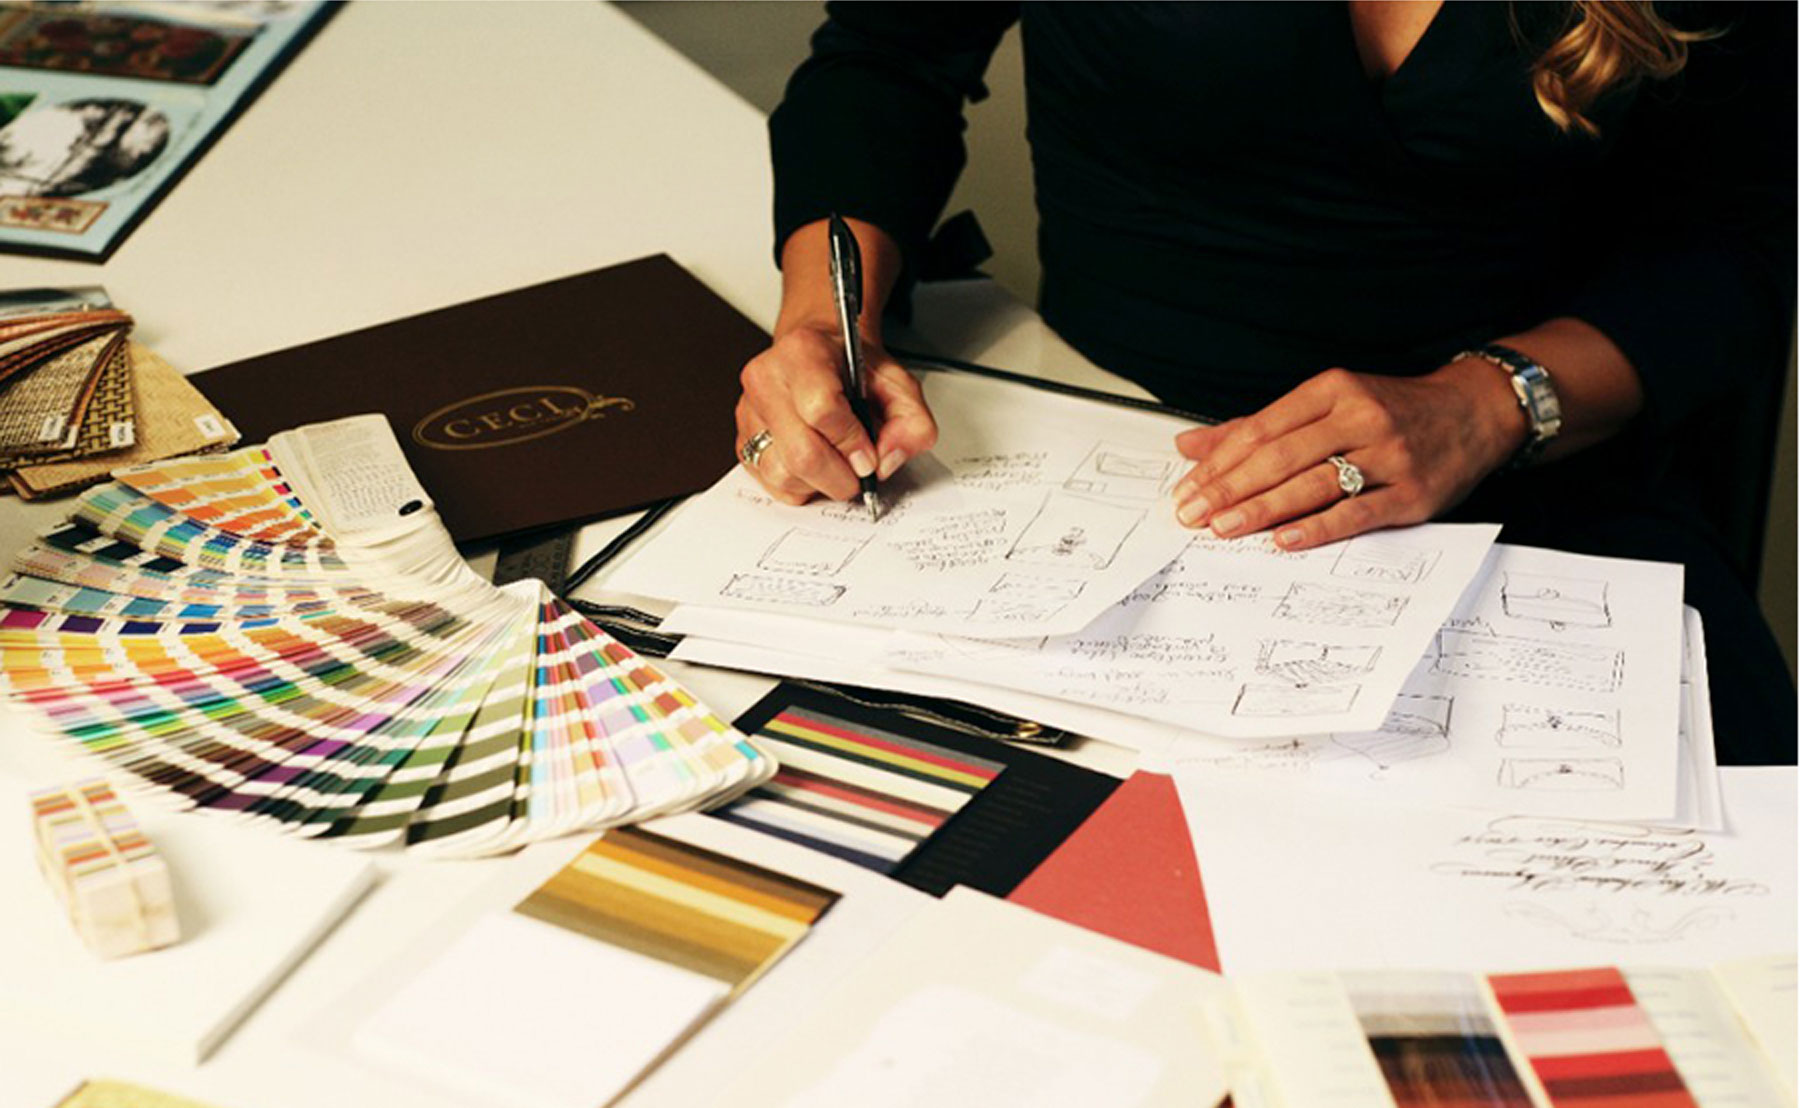 Ceci New York design process